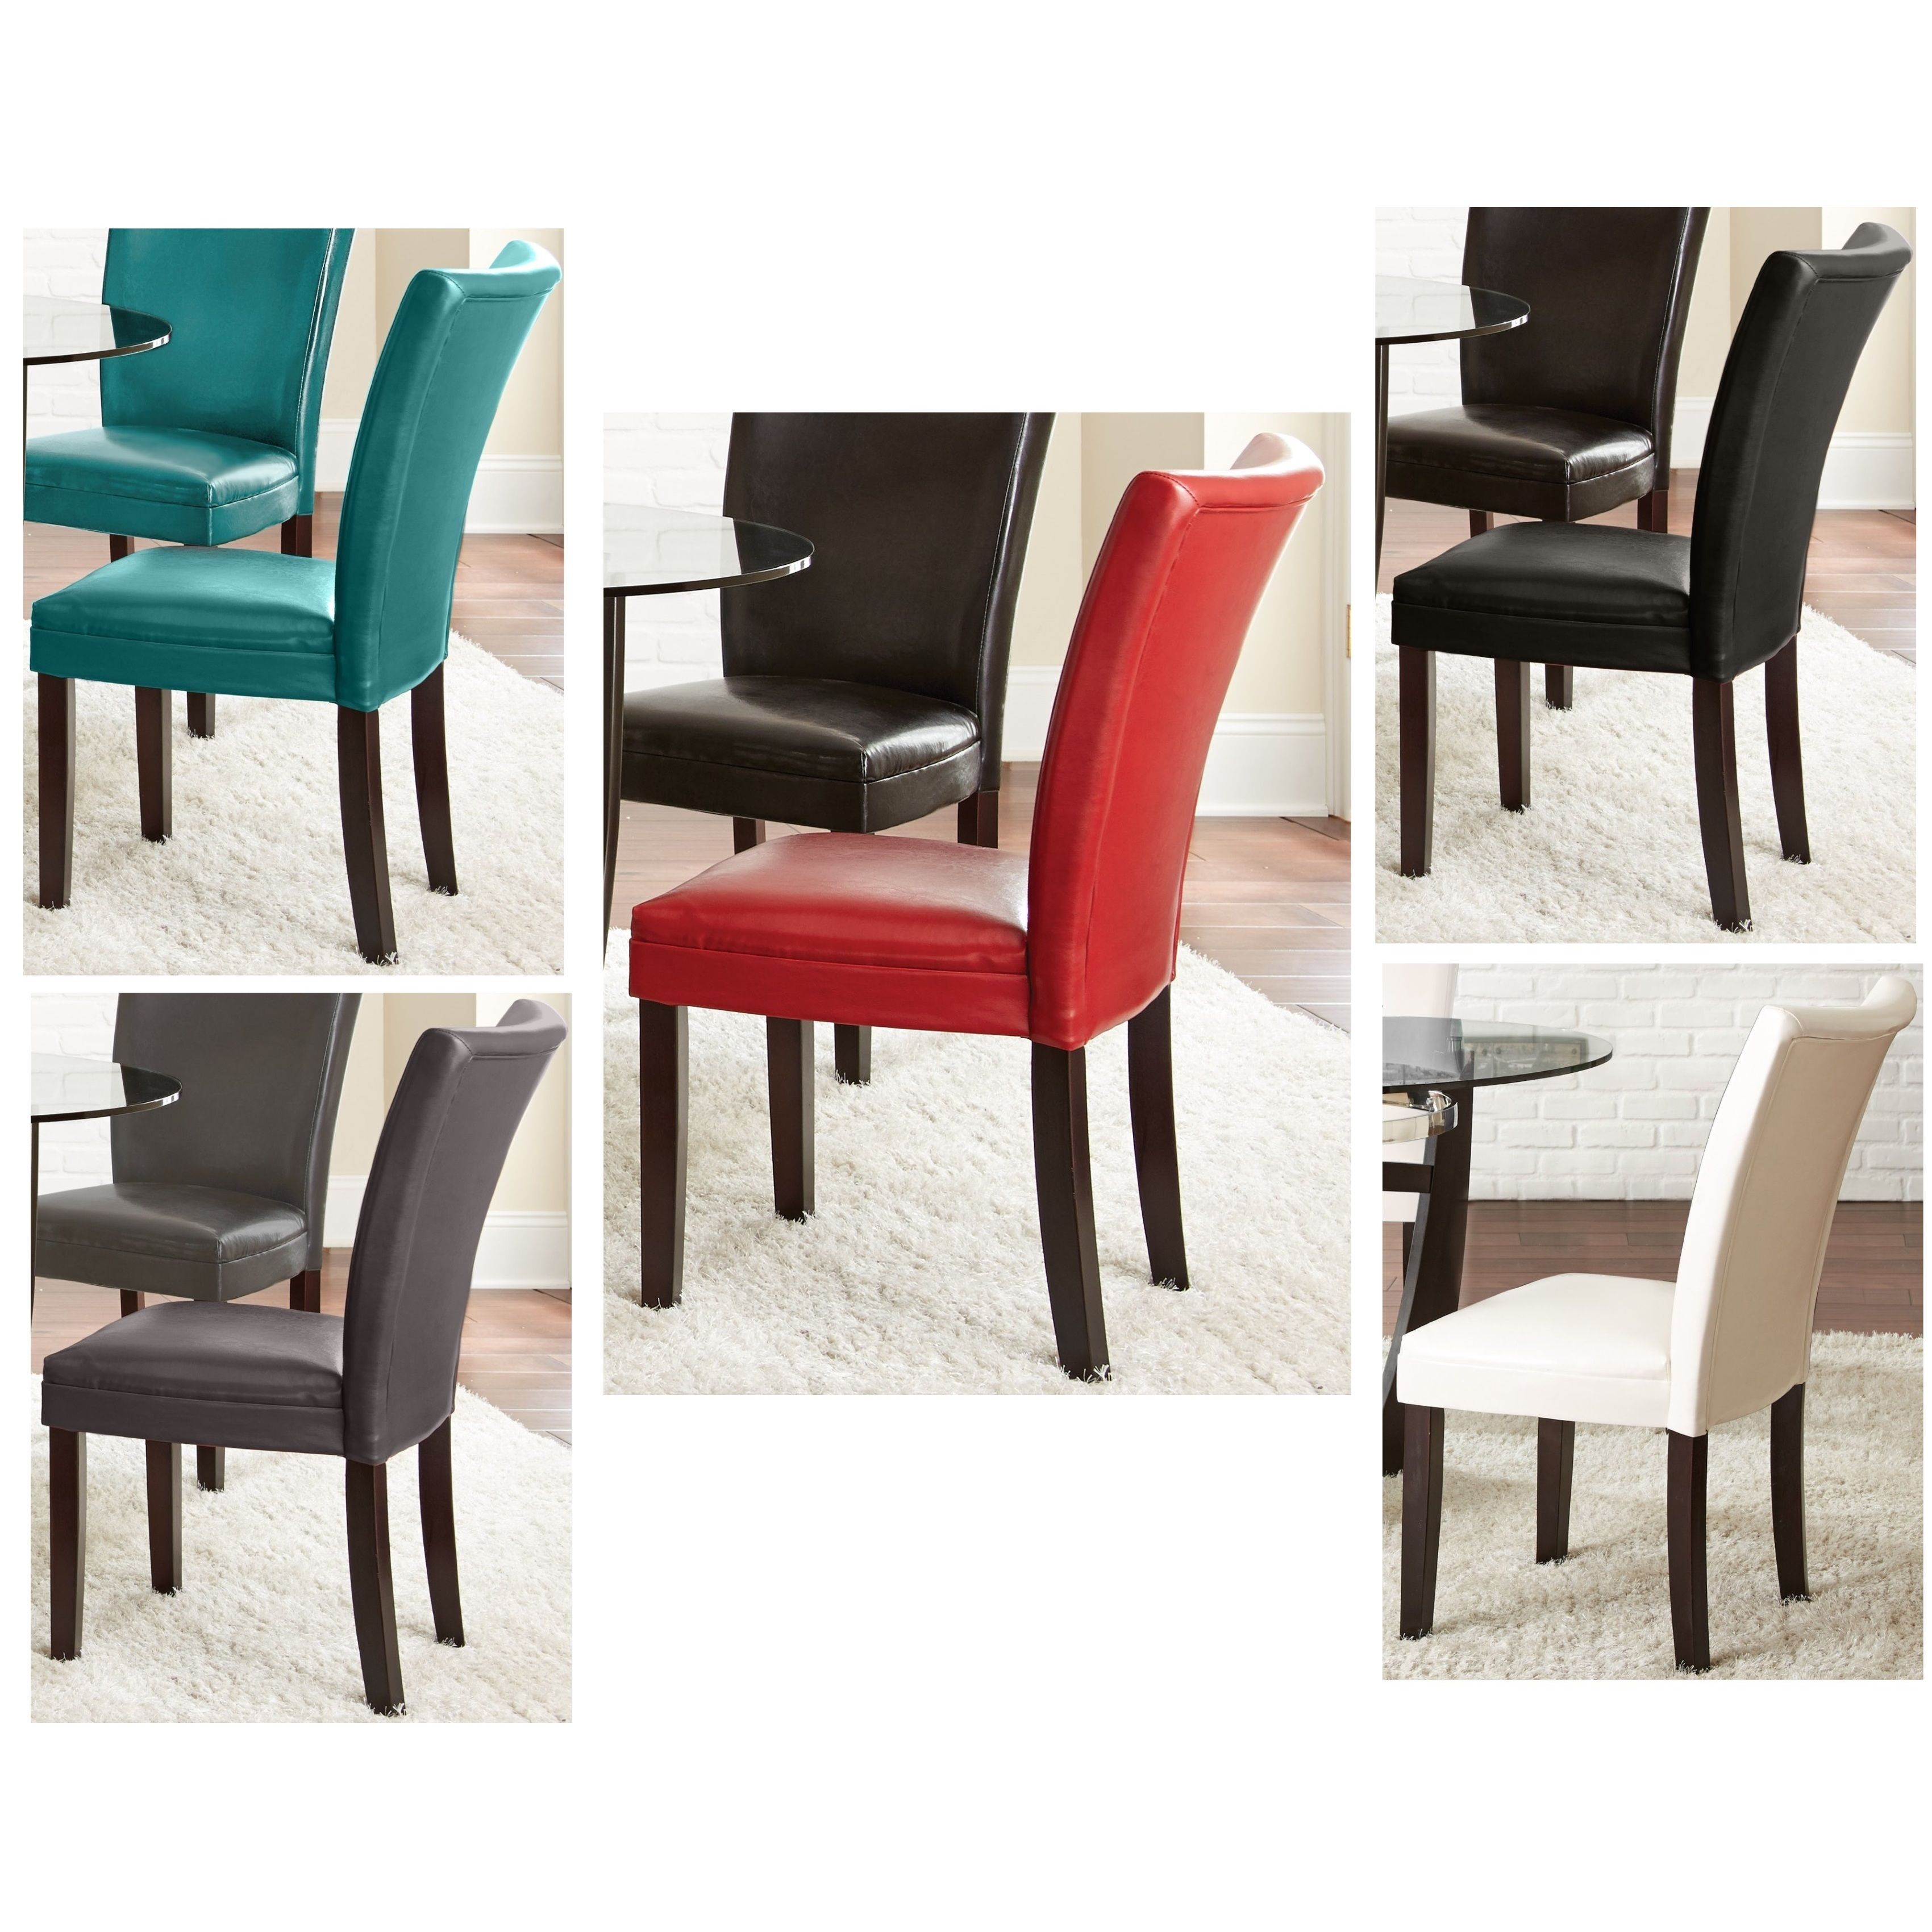 The Monoco leather dining chairs are upholstered in sleek ...